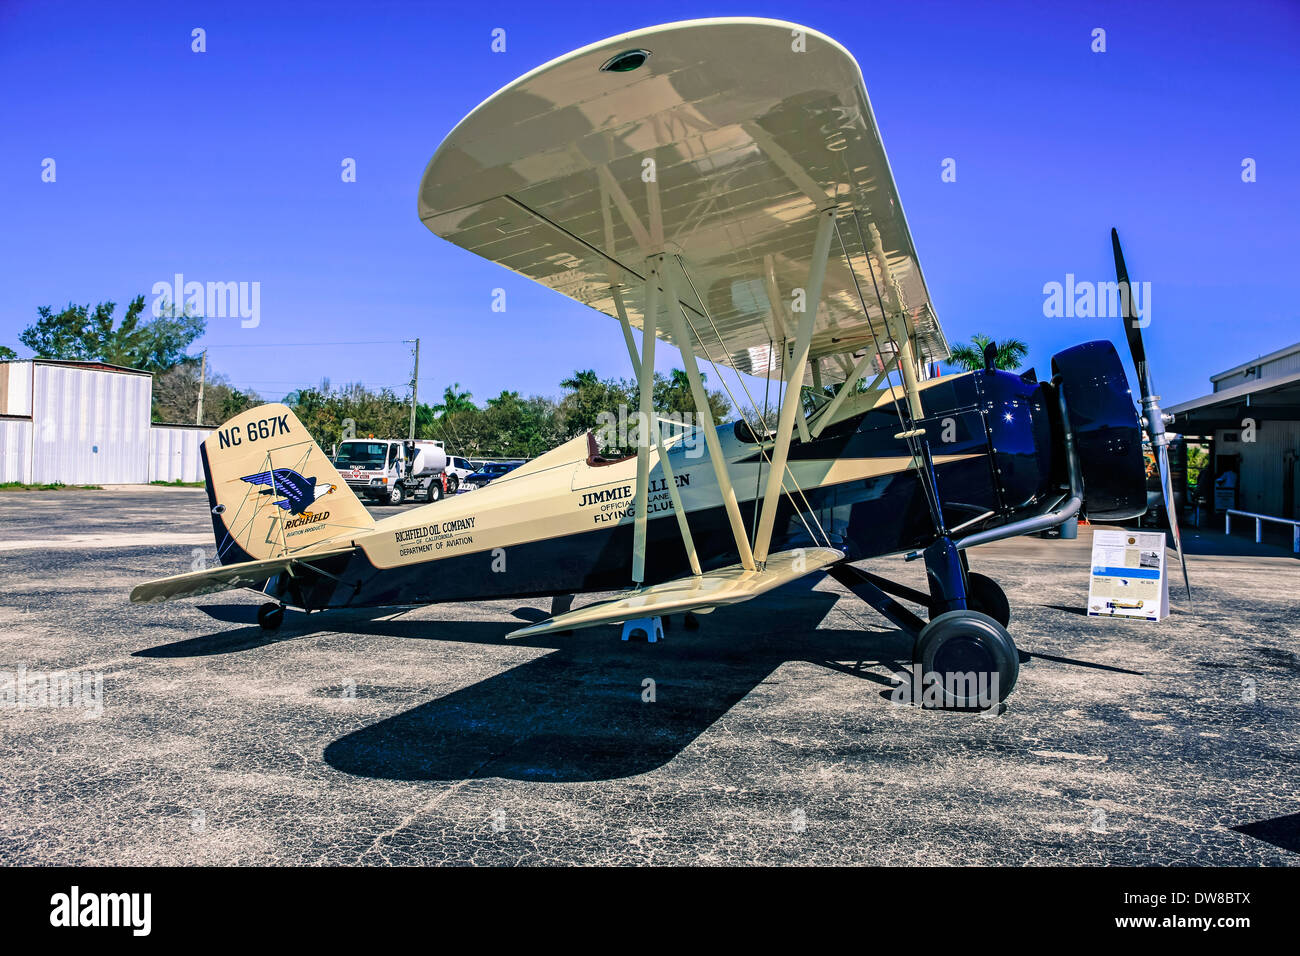 A 1930s Model 4C Stearman Speedmill biplane - Stock Image